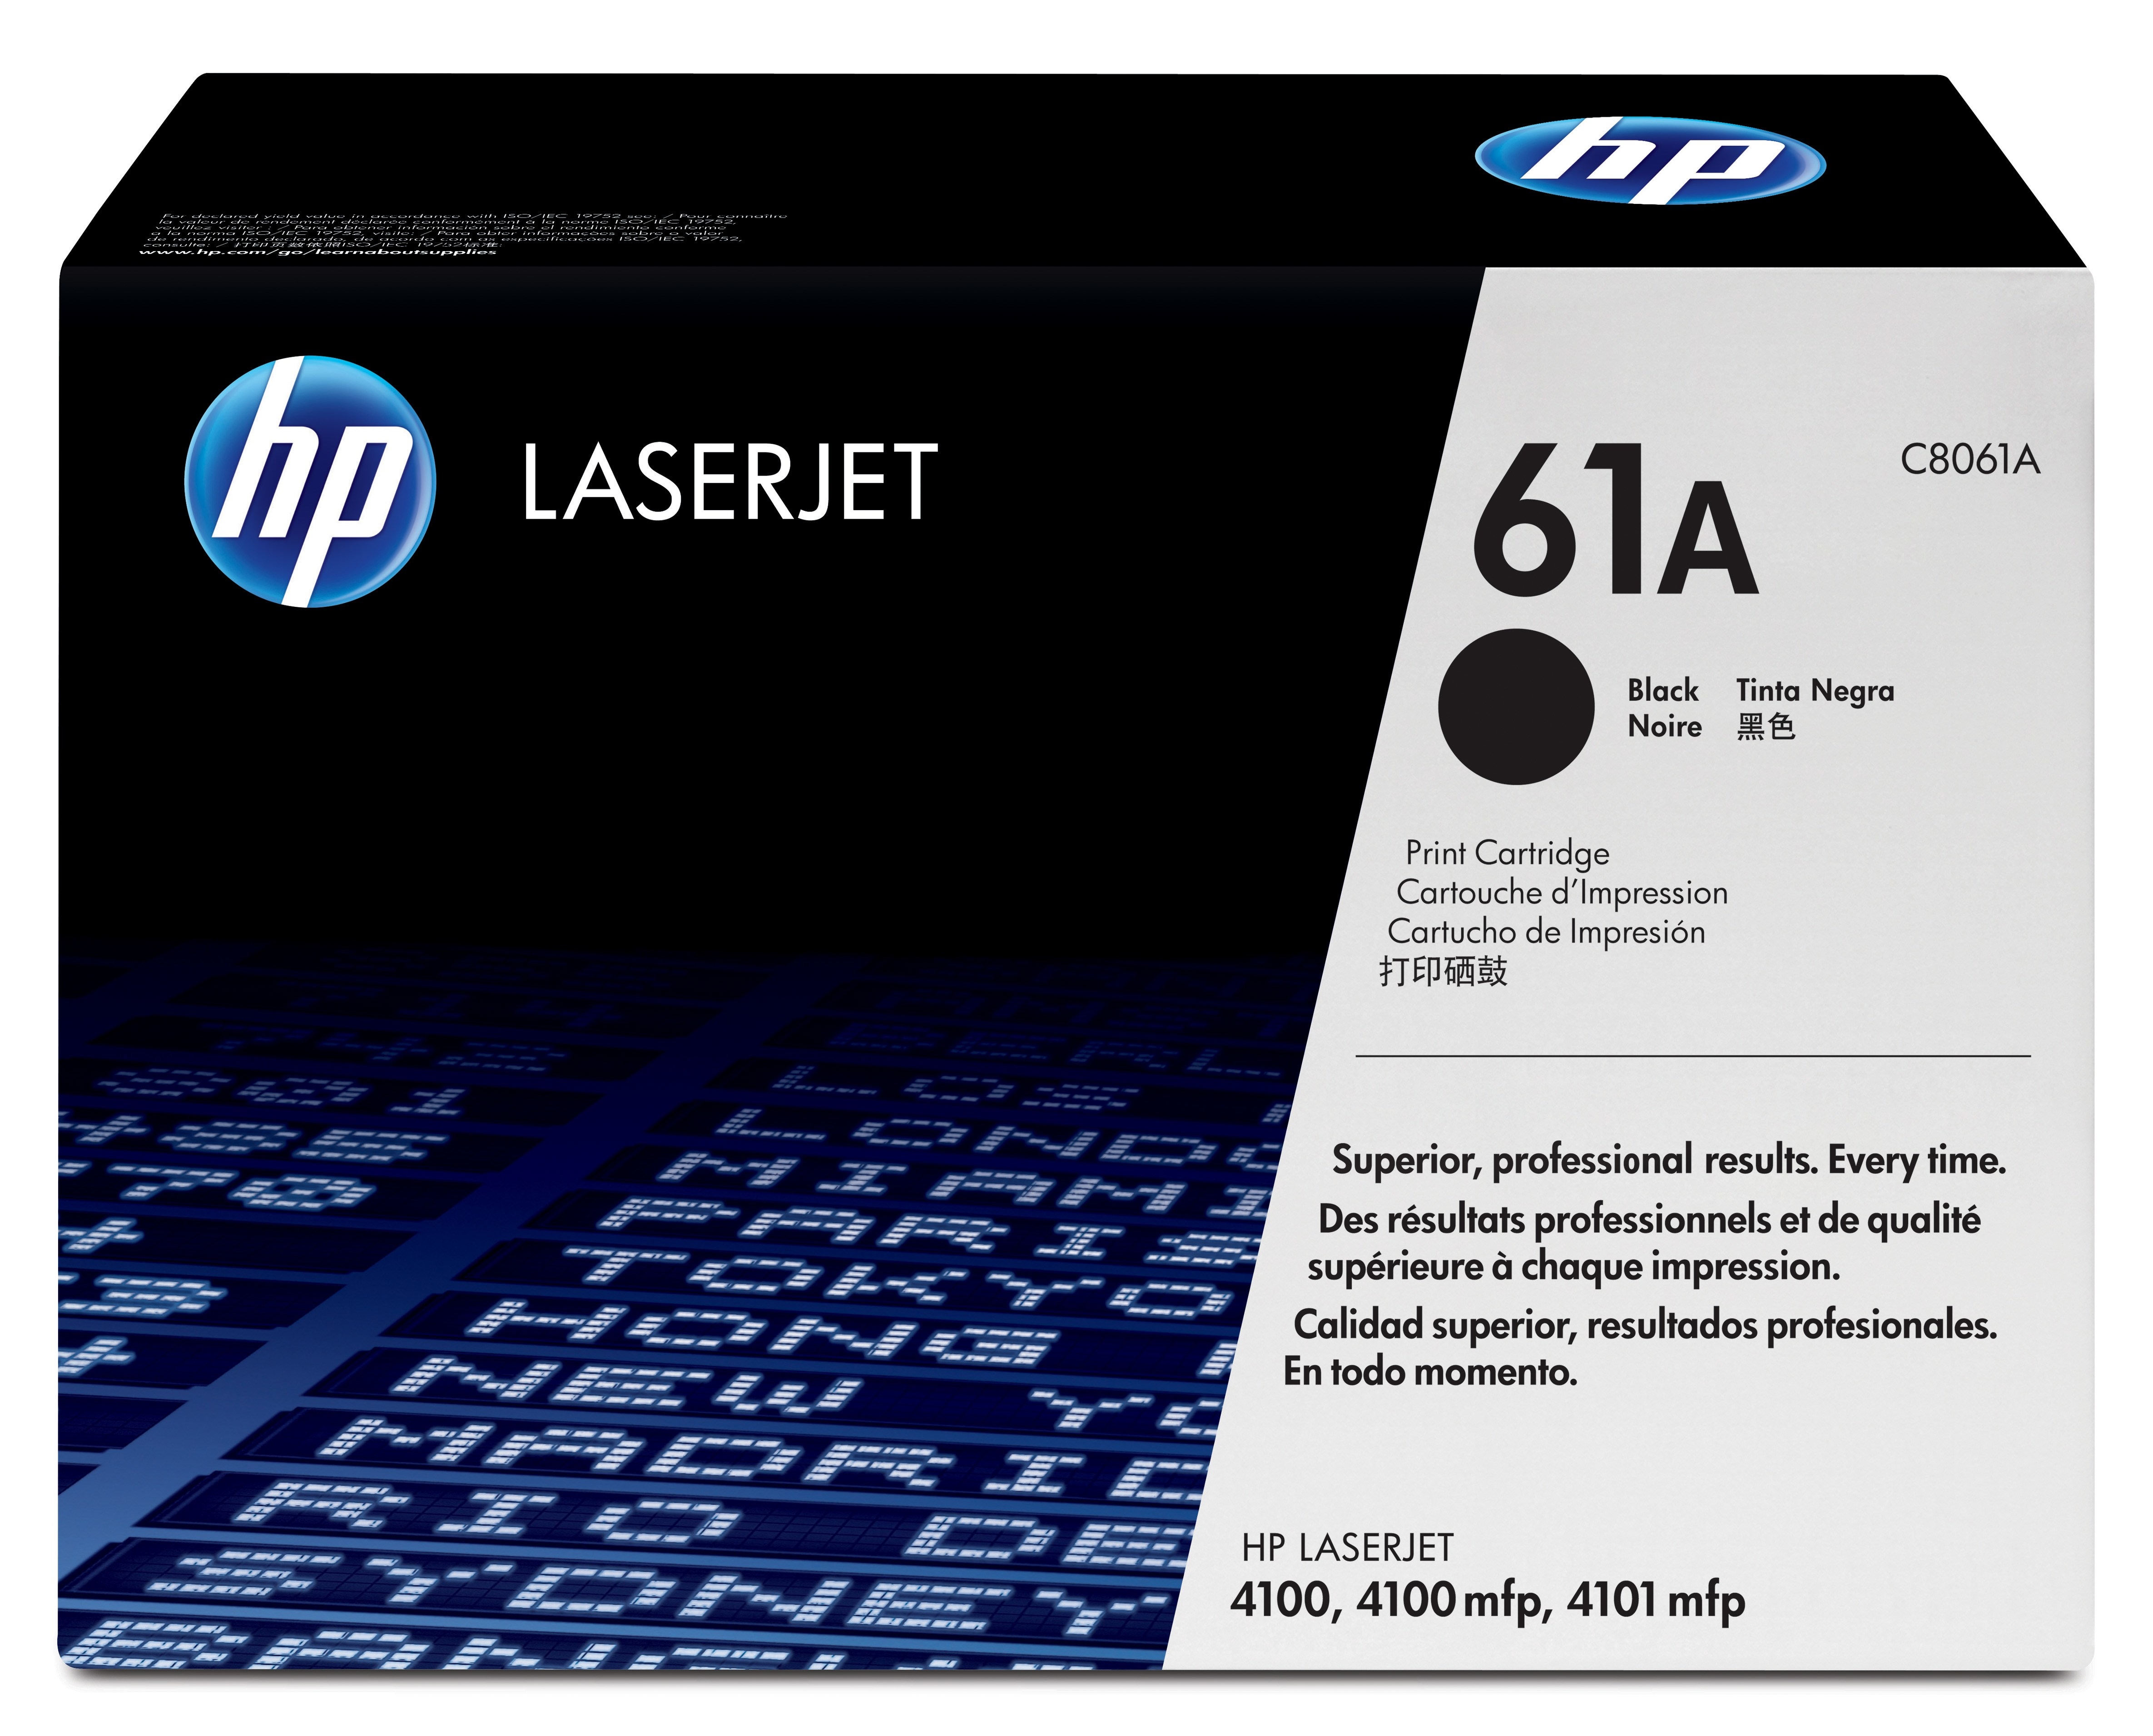 Remanufactured HP C8061A Toner Cartridge Black 6K C8061A - rem01